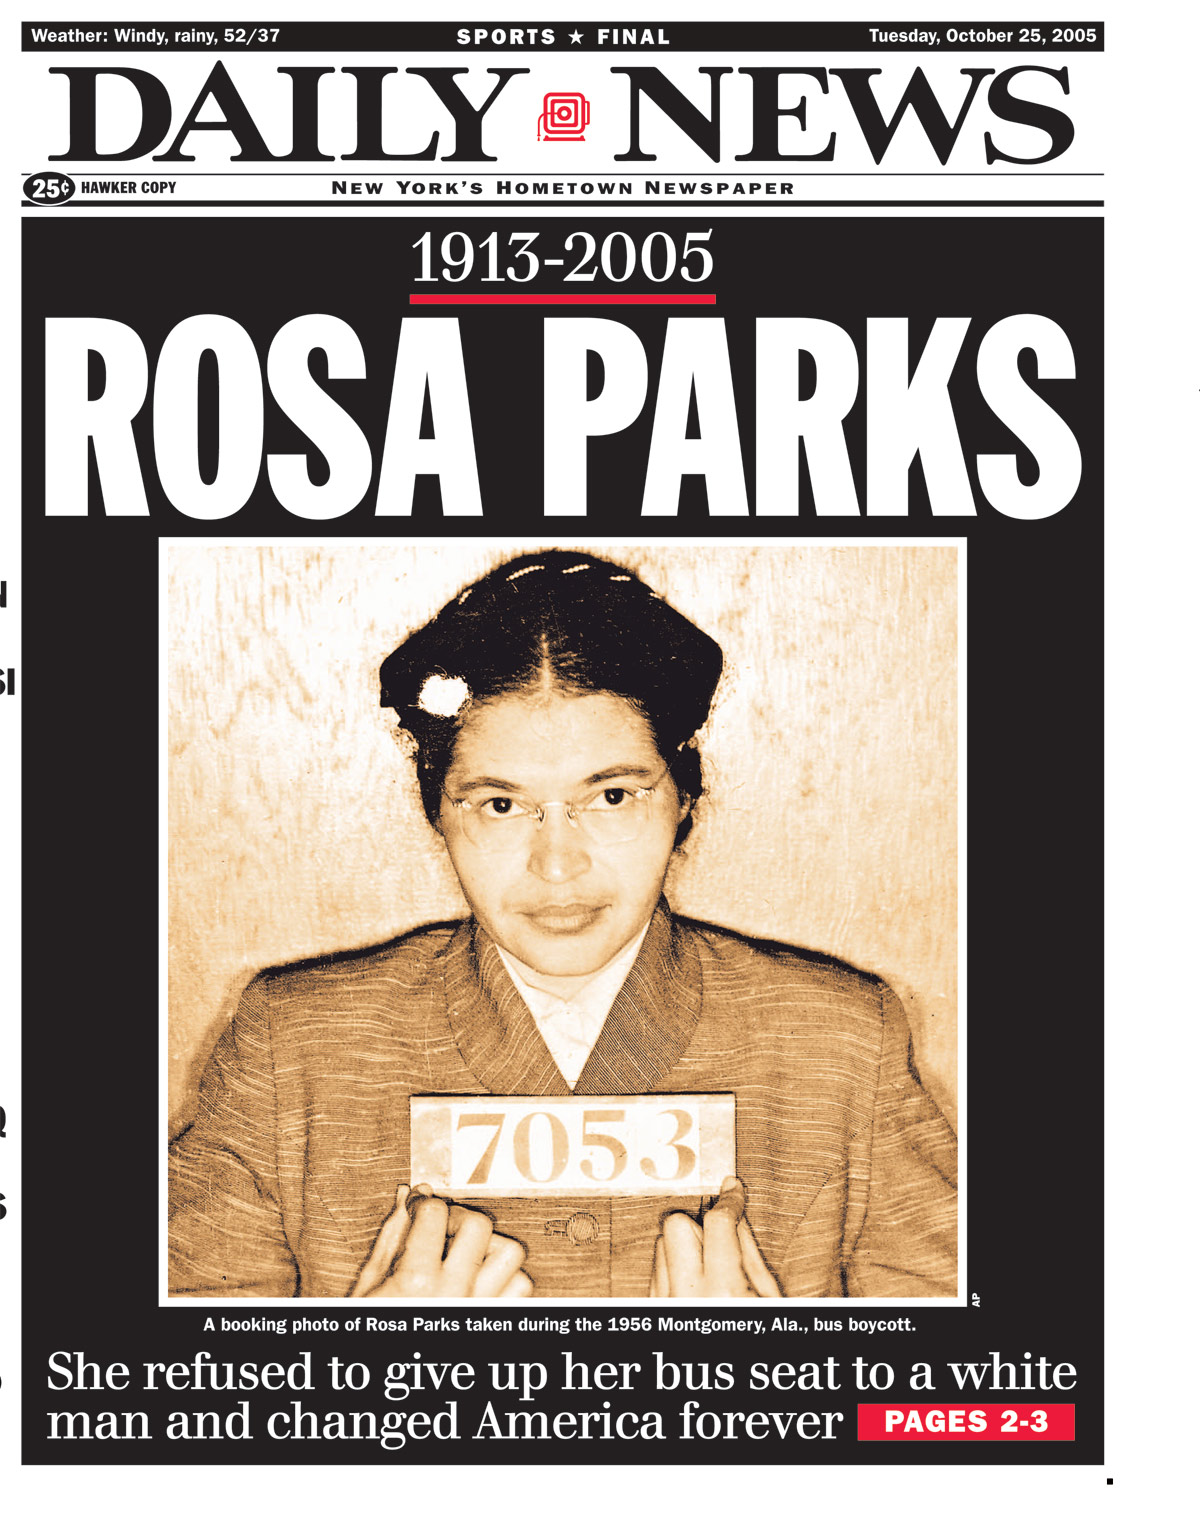 Rosa Parks, civil rights activist, dies at 92 in 2005 - New